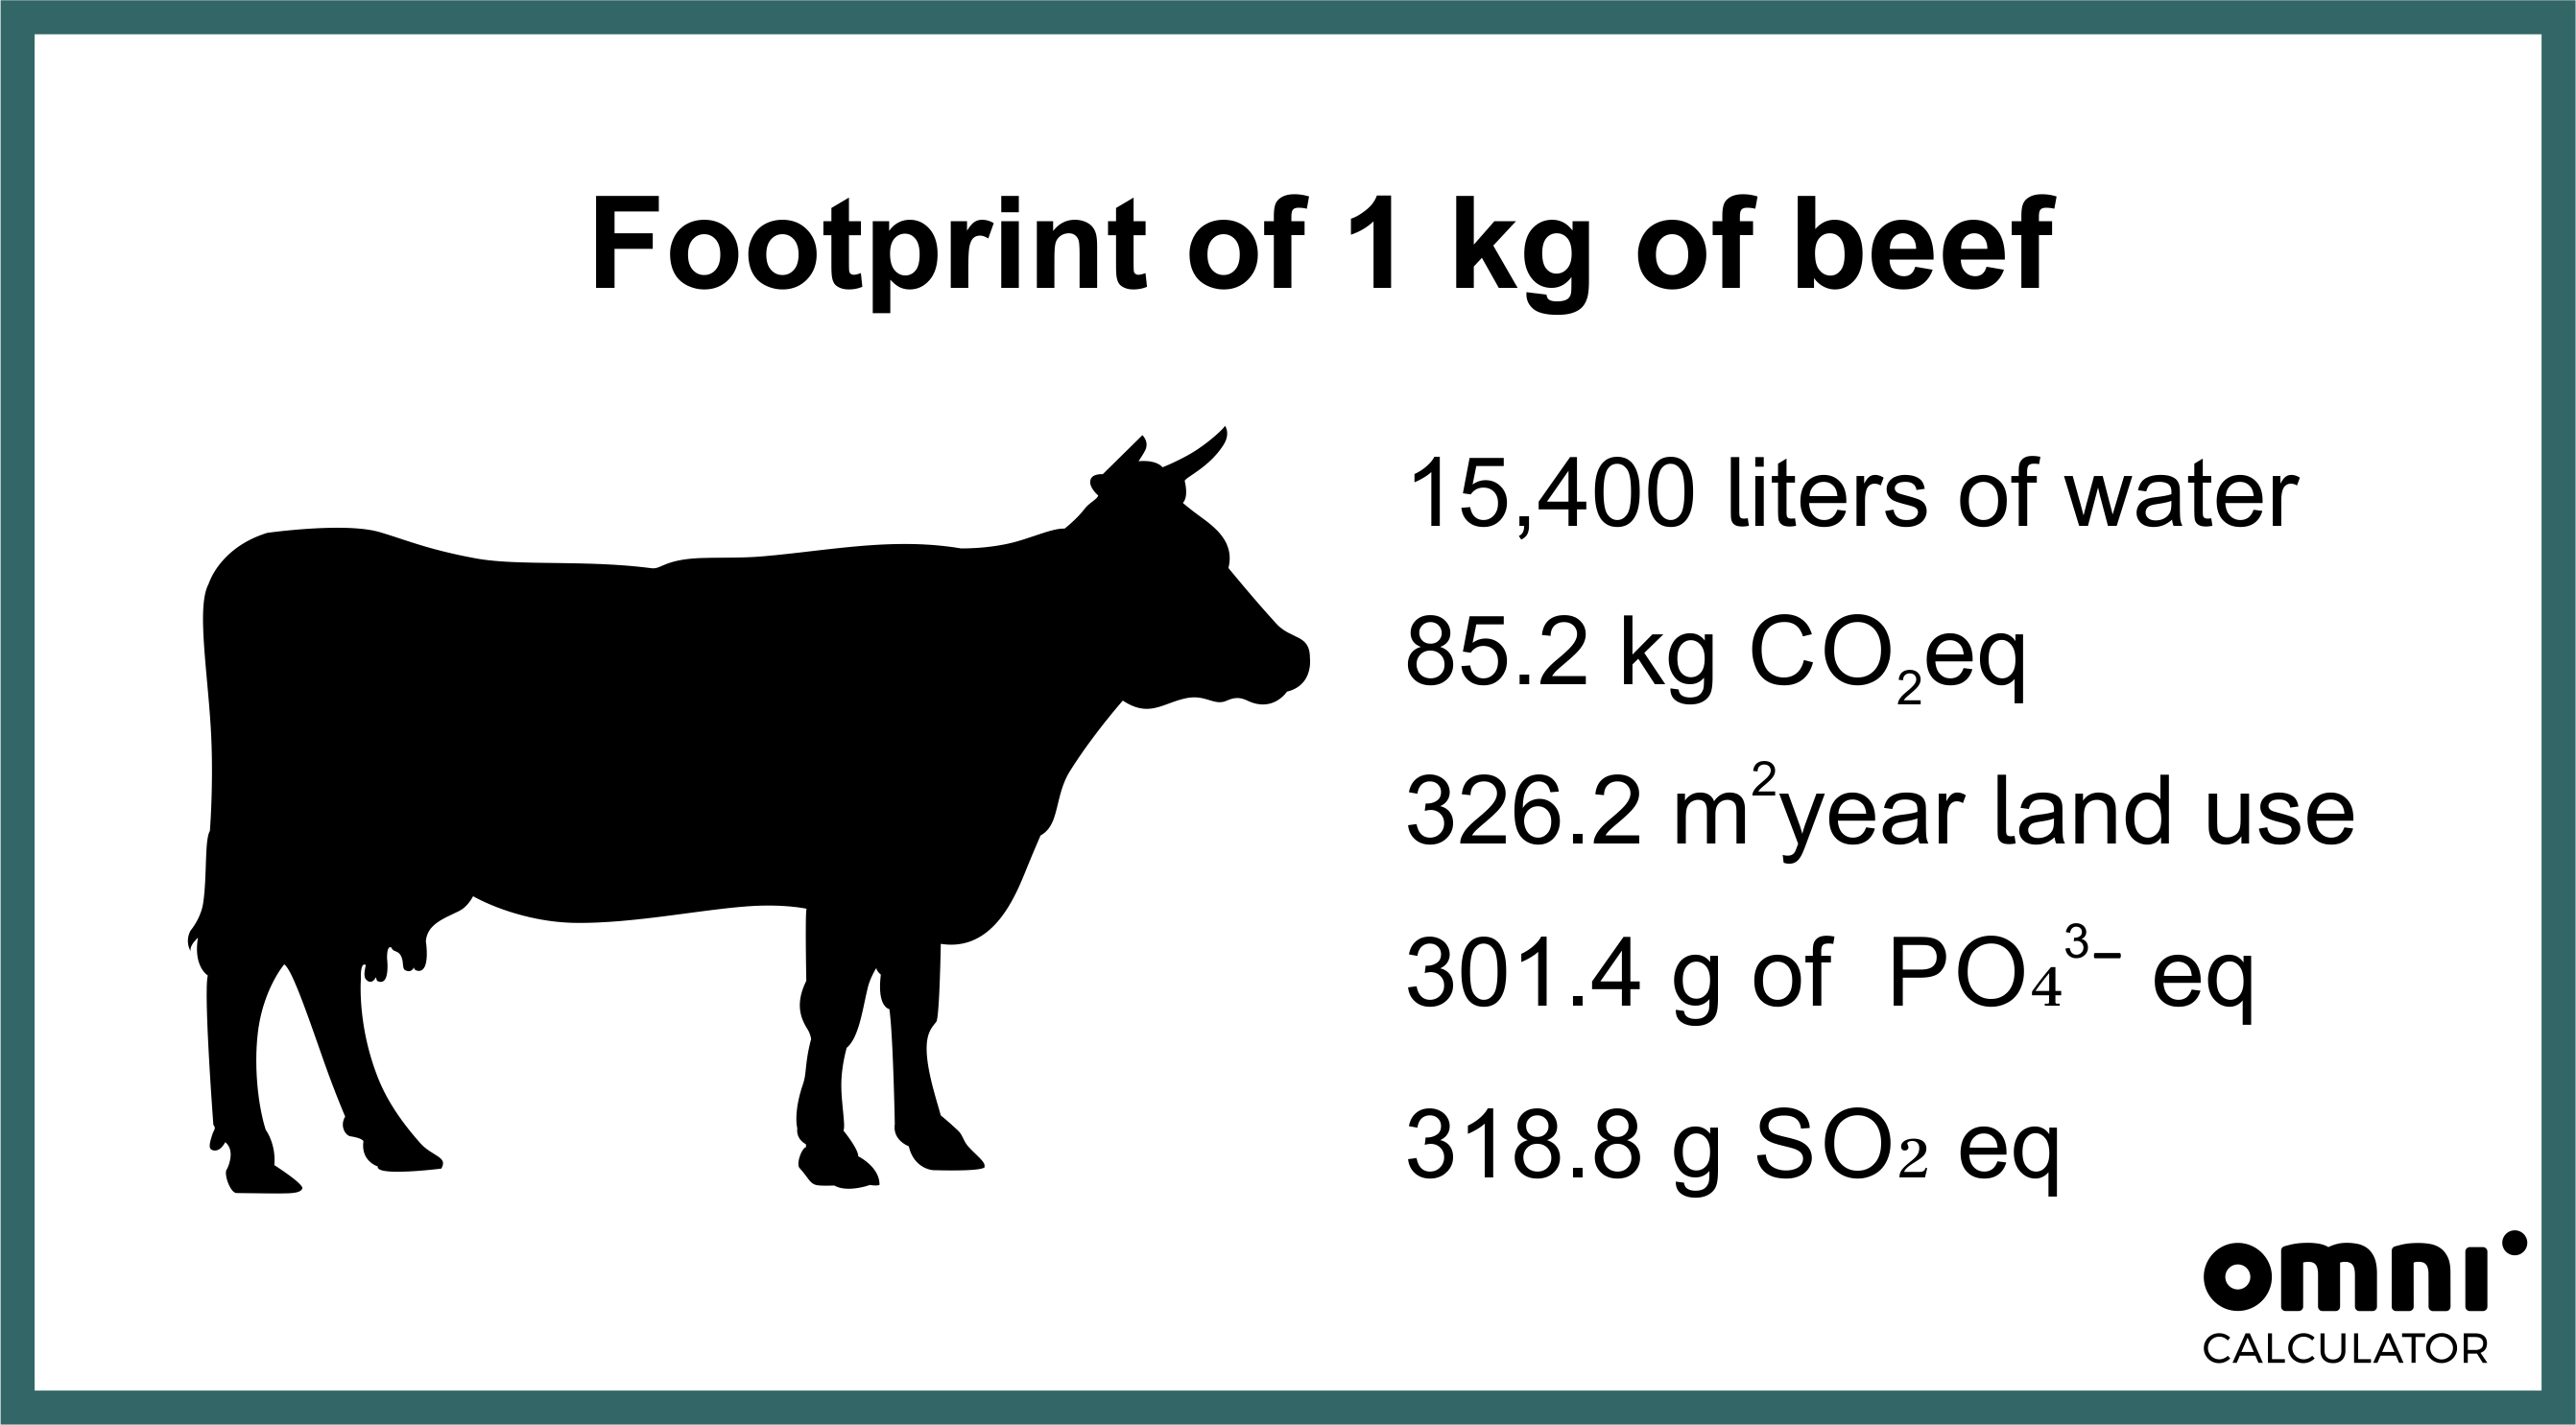 Footprint of 1kg of beef. 15400 liters of water, 85.2 kg CO2eq, 326,2 m2 year land use, 301.4g  of PO4 3-, 318.8g SO2 eq.